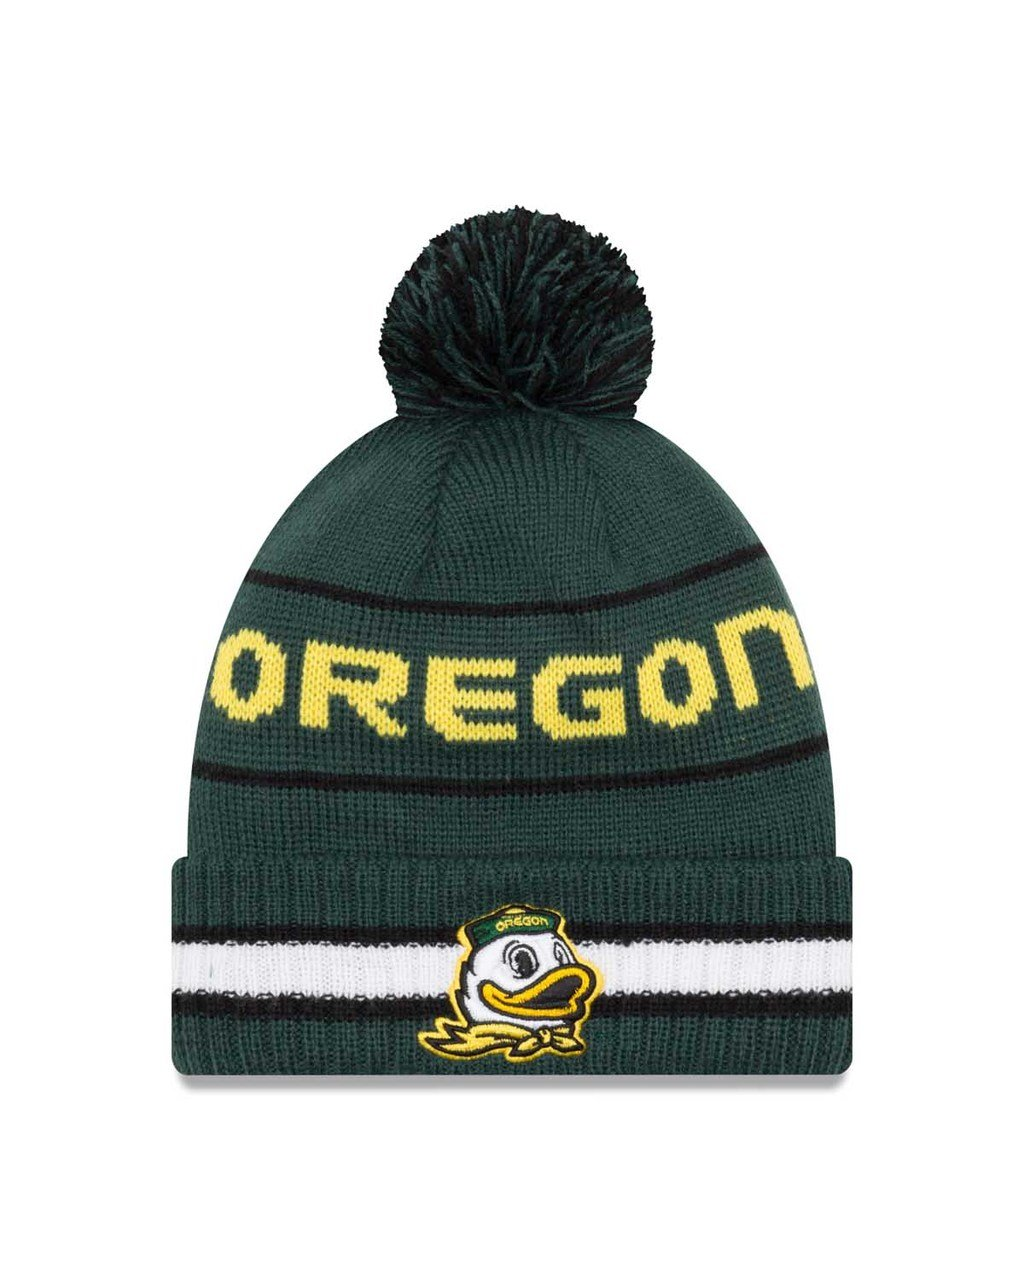 New Era College Vintage Select Knit Pom Beanie - Multiple Teams, One Size